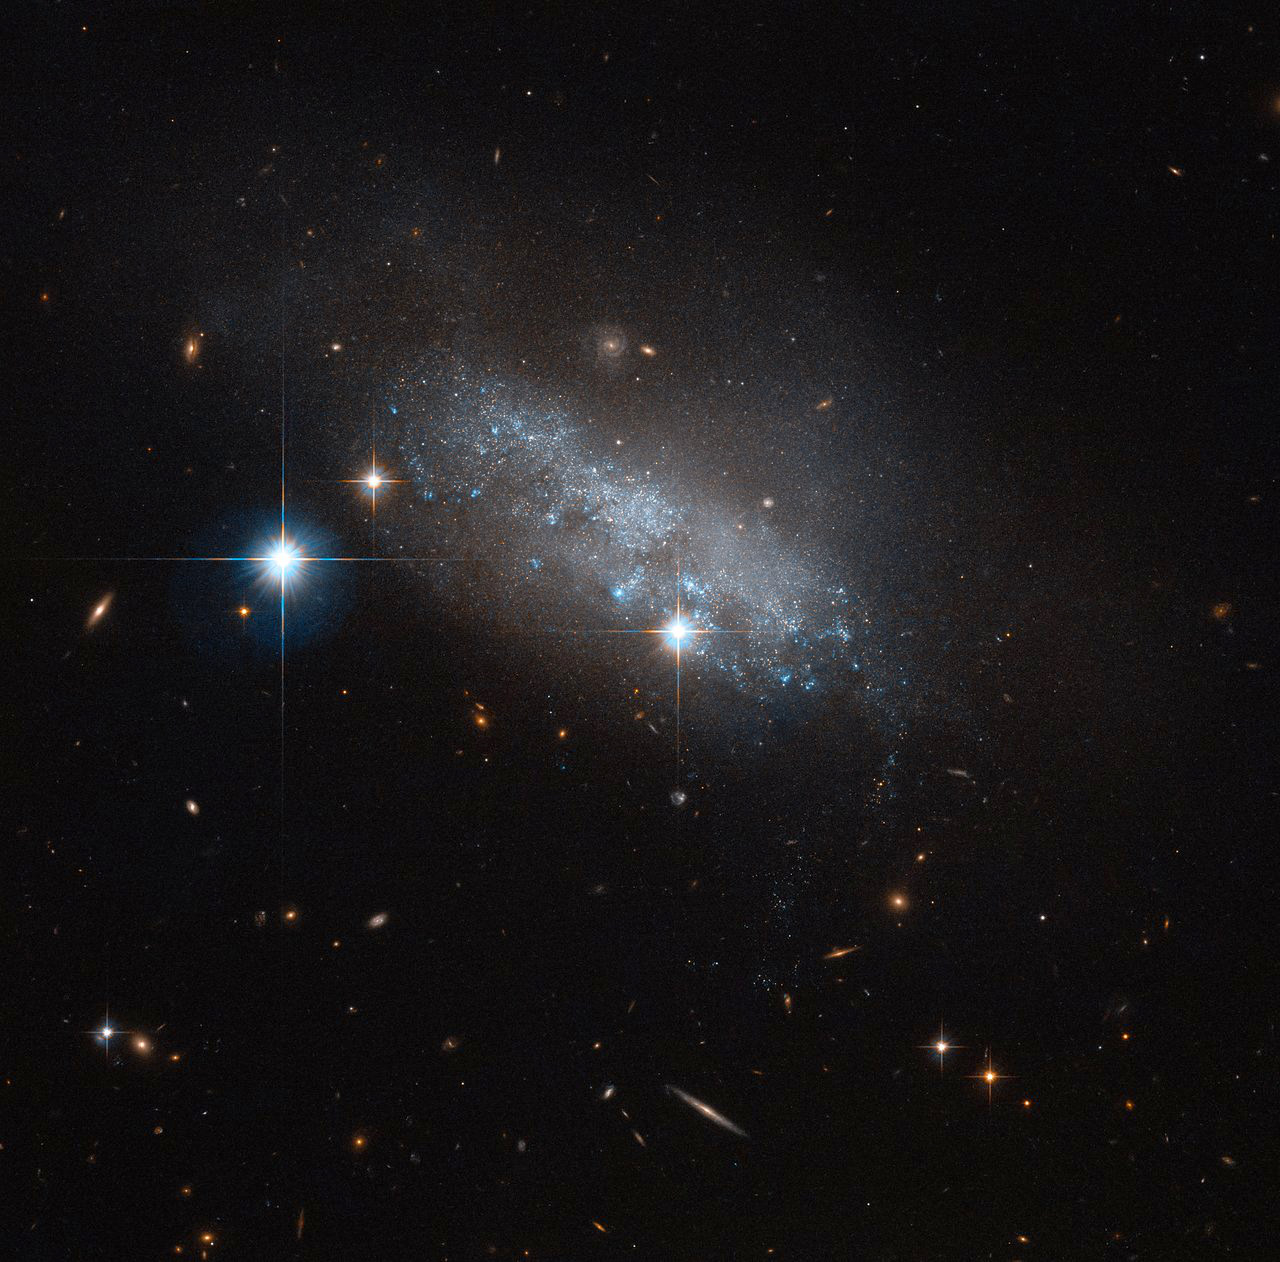 IC3583 is a magnitude +13 irregular galaxy located 30million light-years away in the constellation of Virgo close to the border with Coma Berenices. IC3583 is thought to be gravitationally interacting with one of its neighbours, the spiral Messier90. Note that the backdrop to IC3583 is strewn with large numbers of more distant galaxies of the Virgo Cluster. Image credit: ESA/Hubble & NASA.